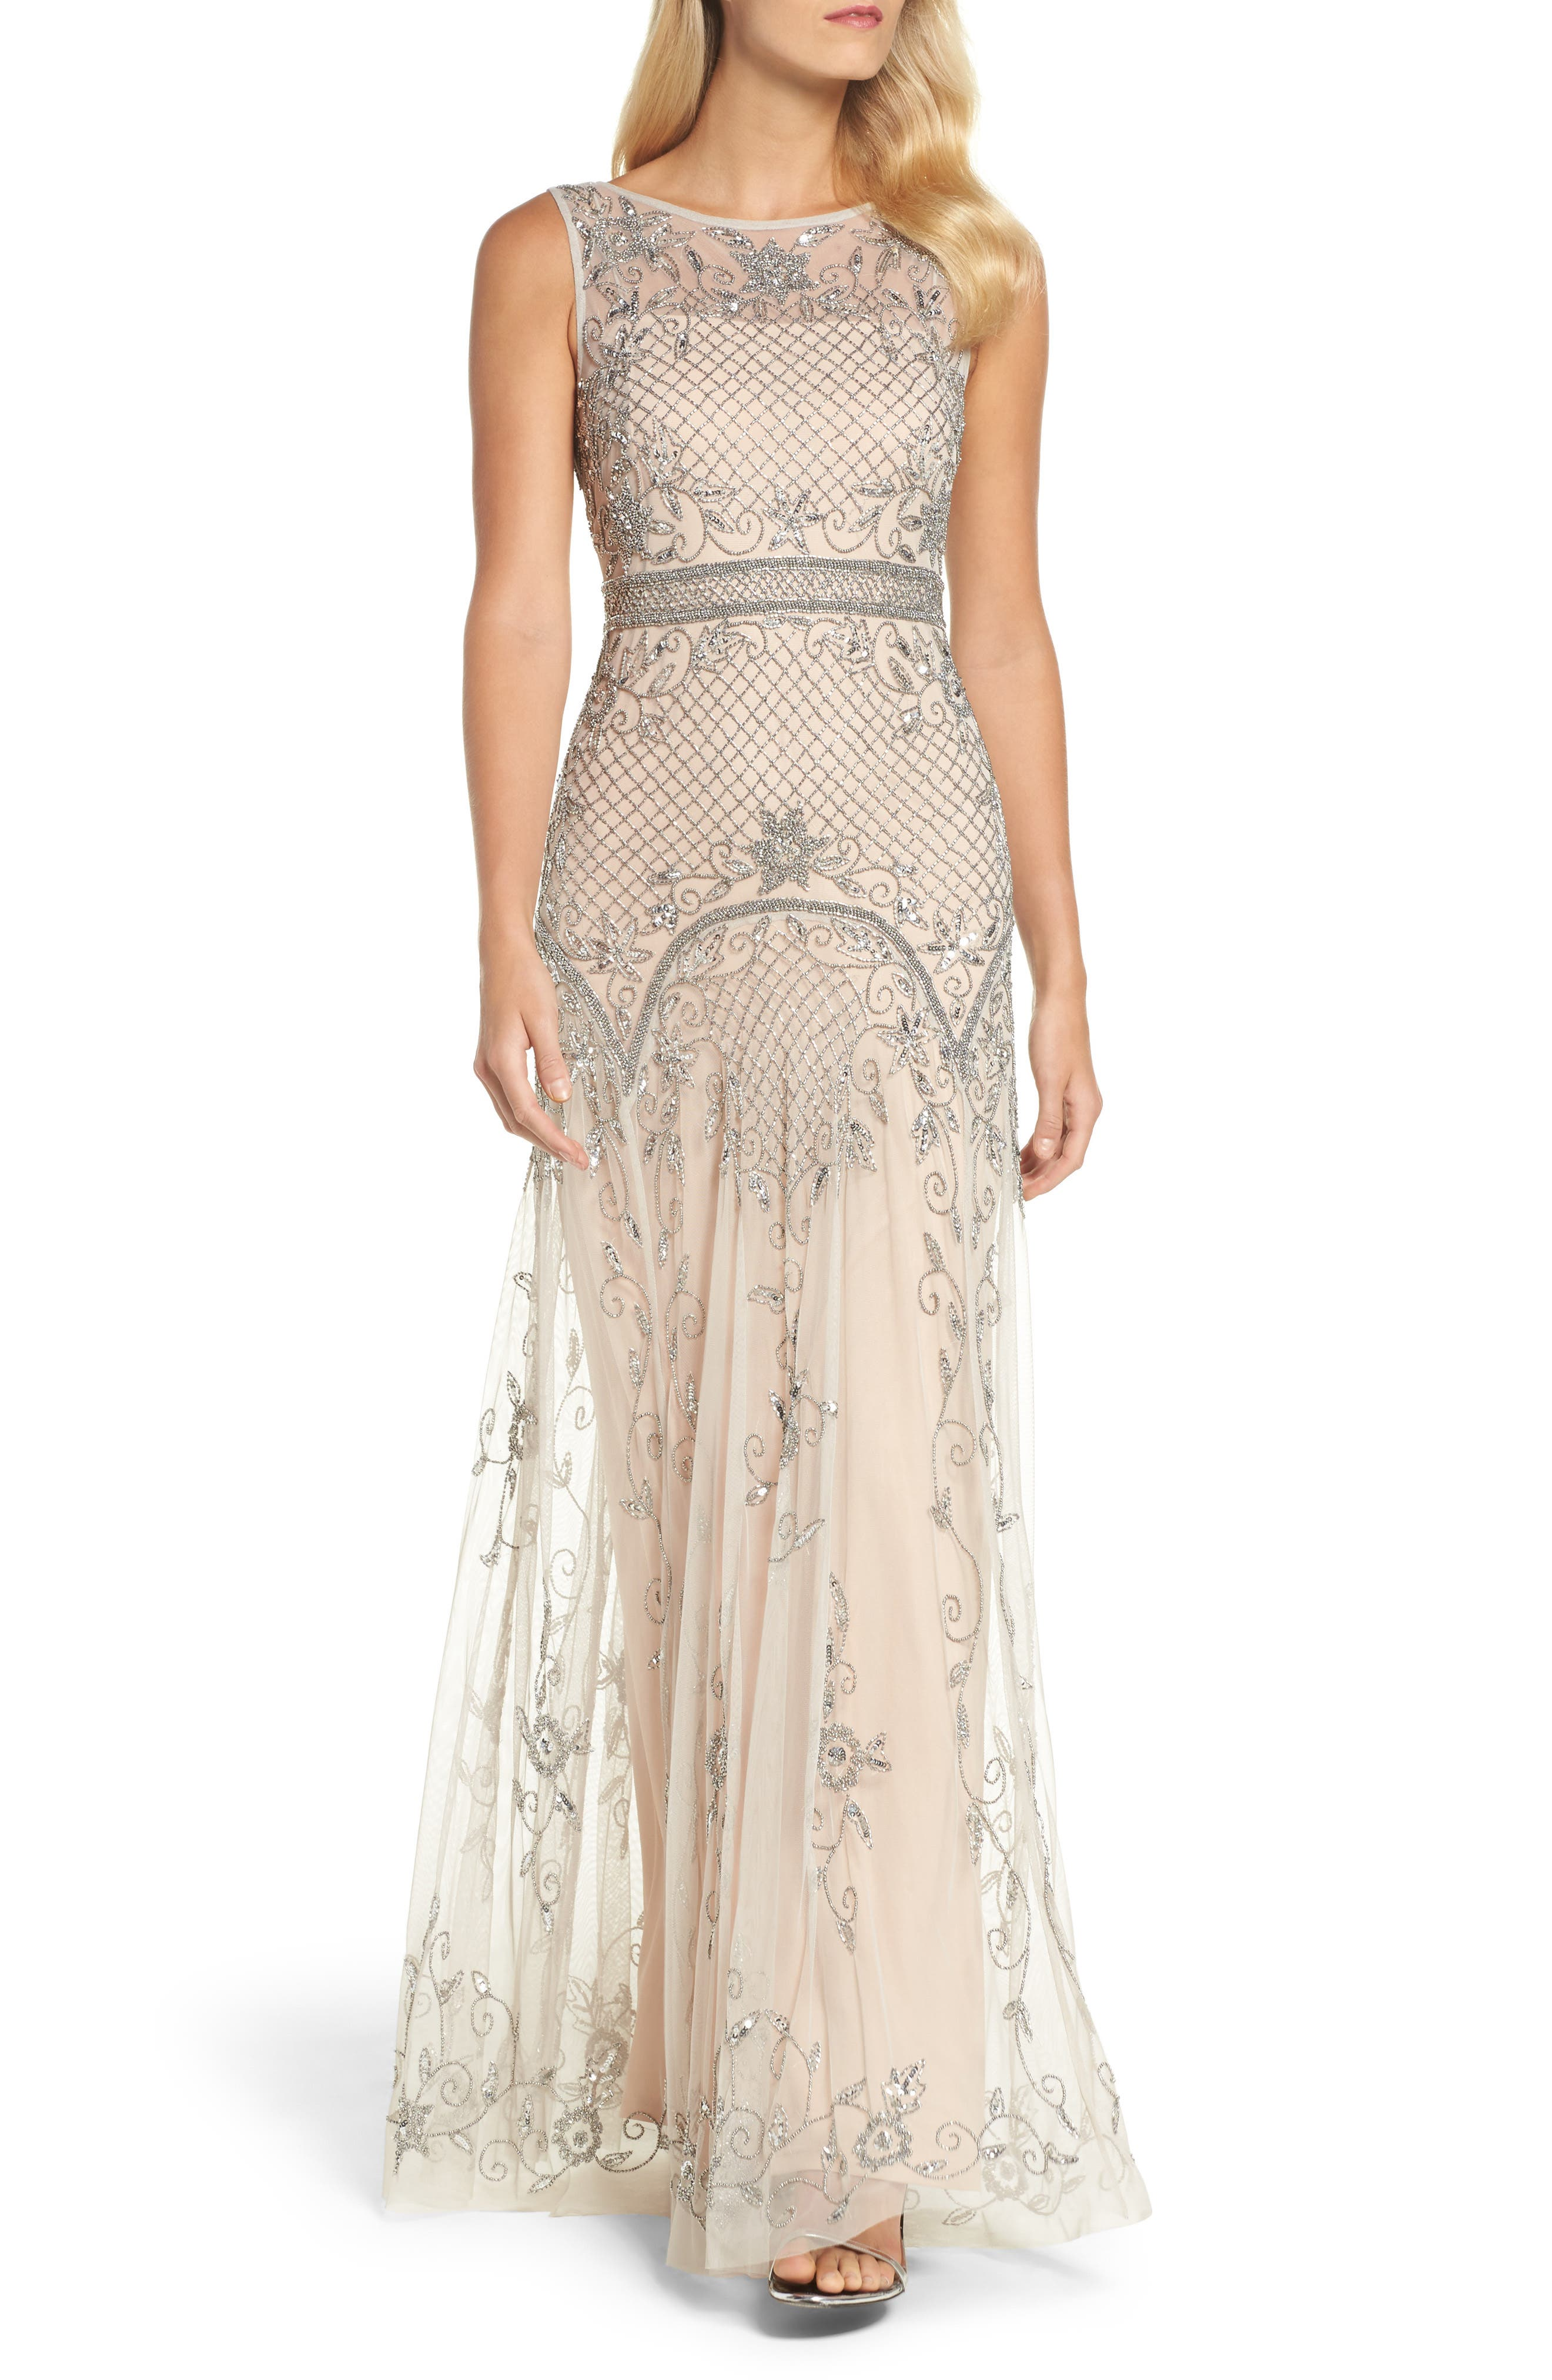 Alternate Image 1 Selected - Adrianna Papell Beaded Illusion Column Gown